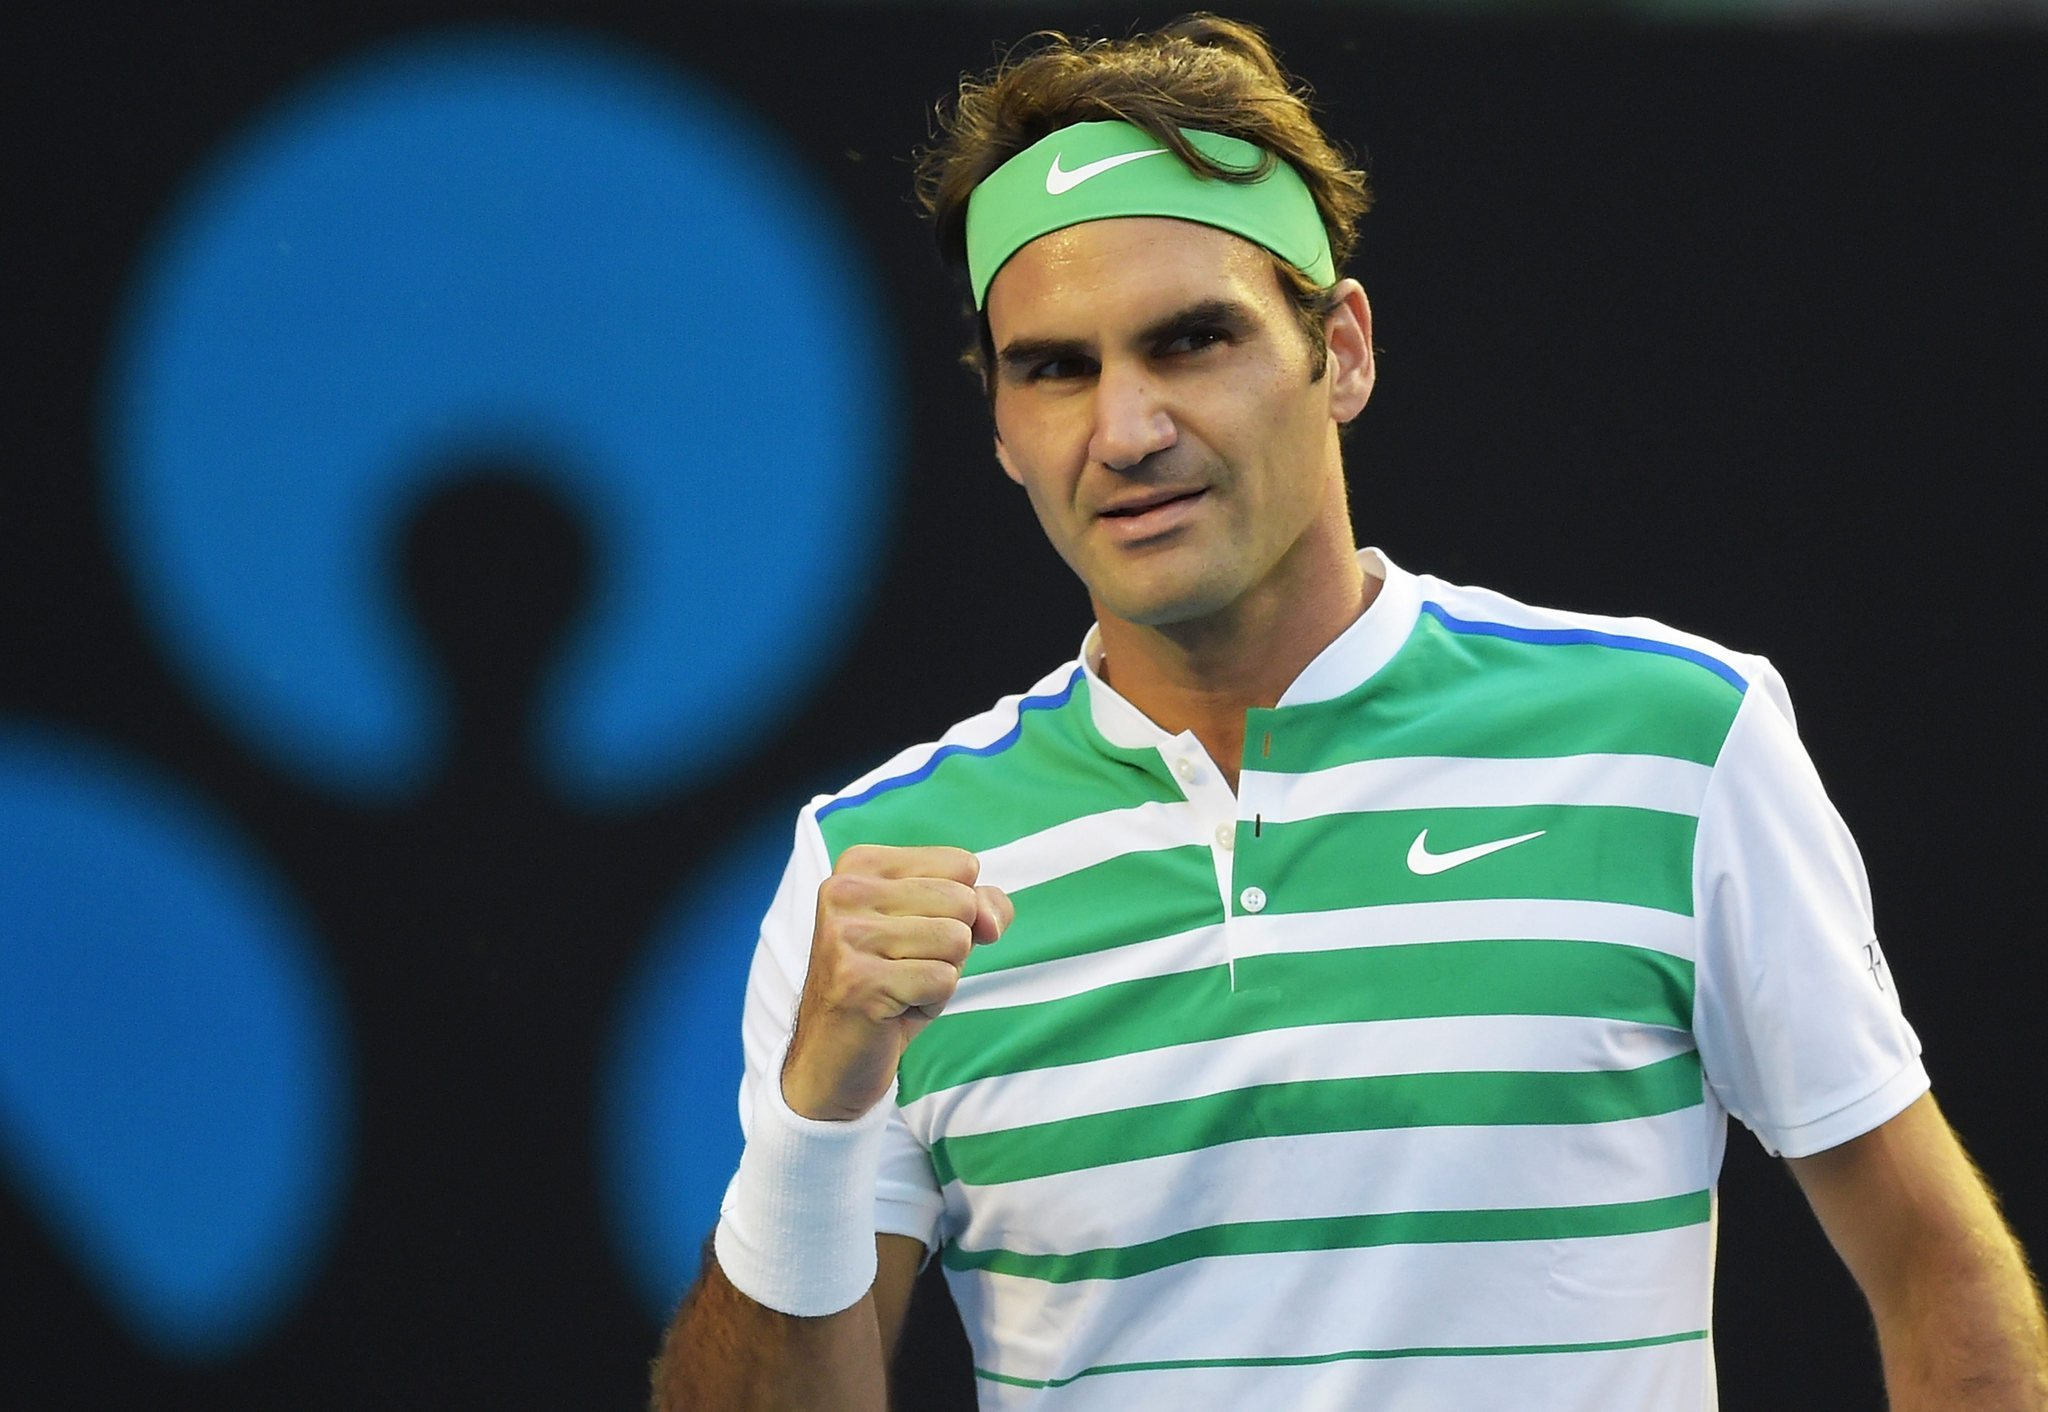 Roger Federer Wide wallpapers